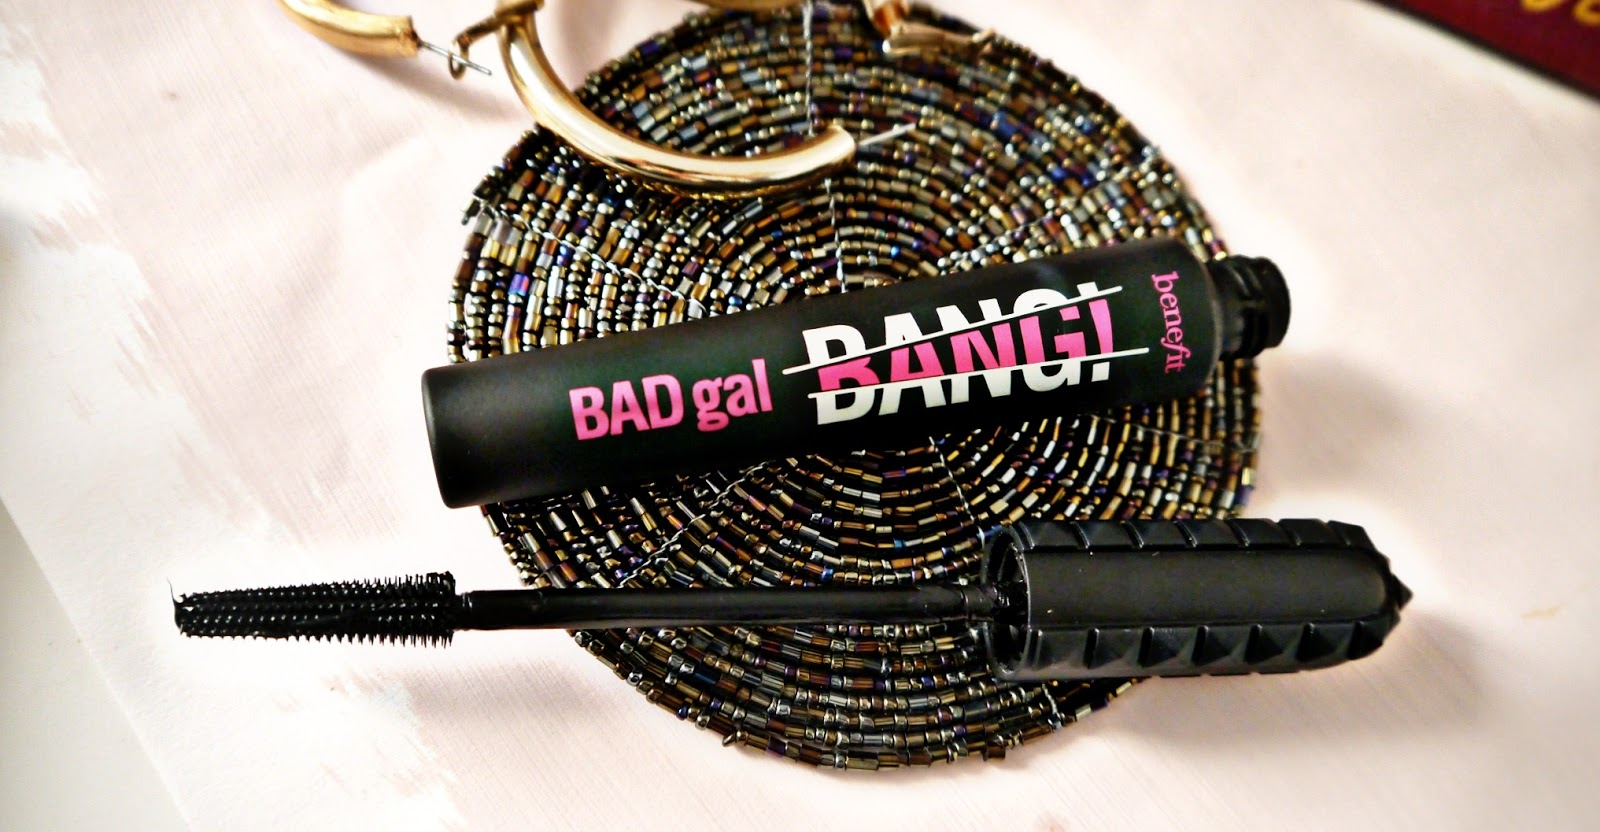 Benefit BADGAL BANG mascara vs L'Oreal Volume million lashes mascara